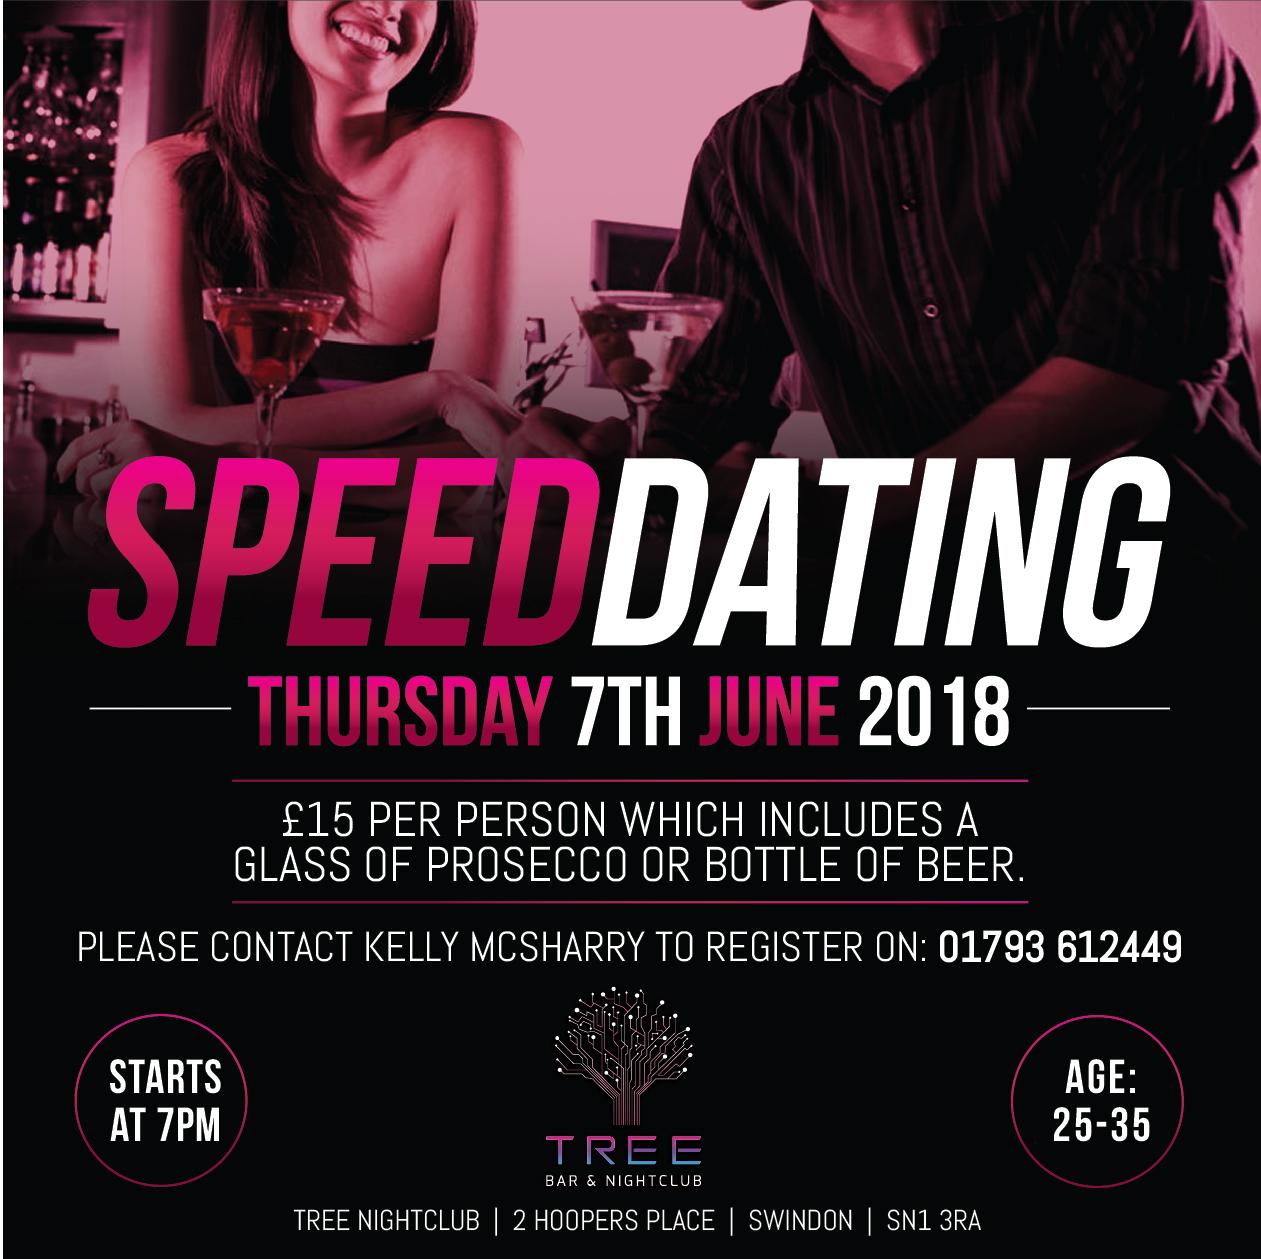 Speed dating events swindon